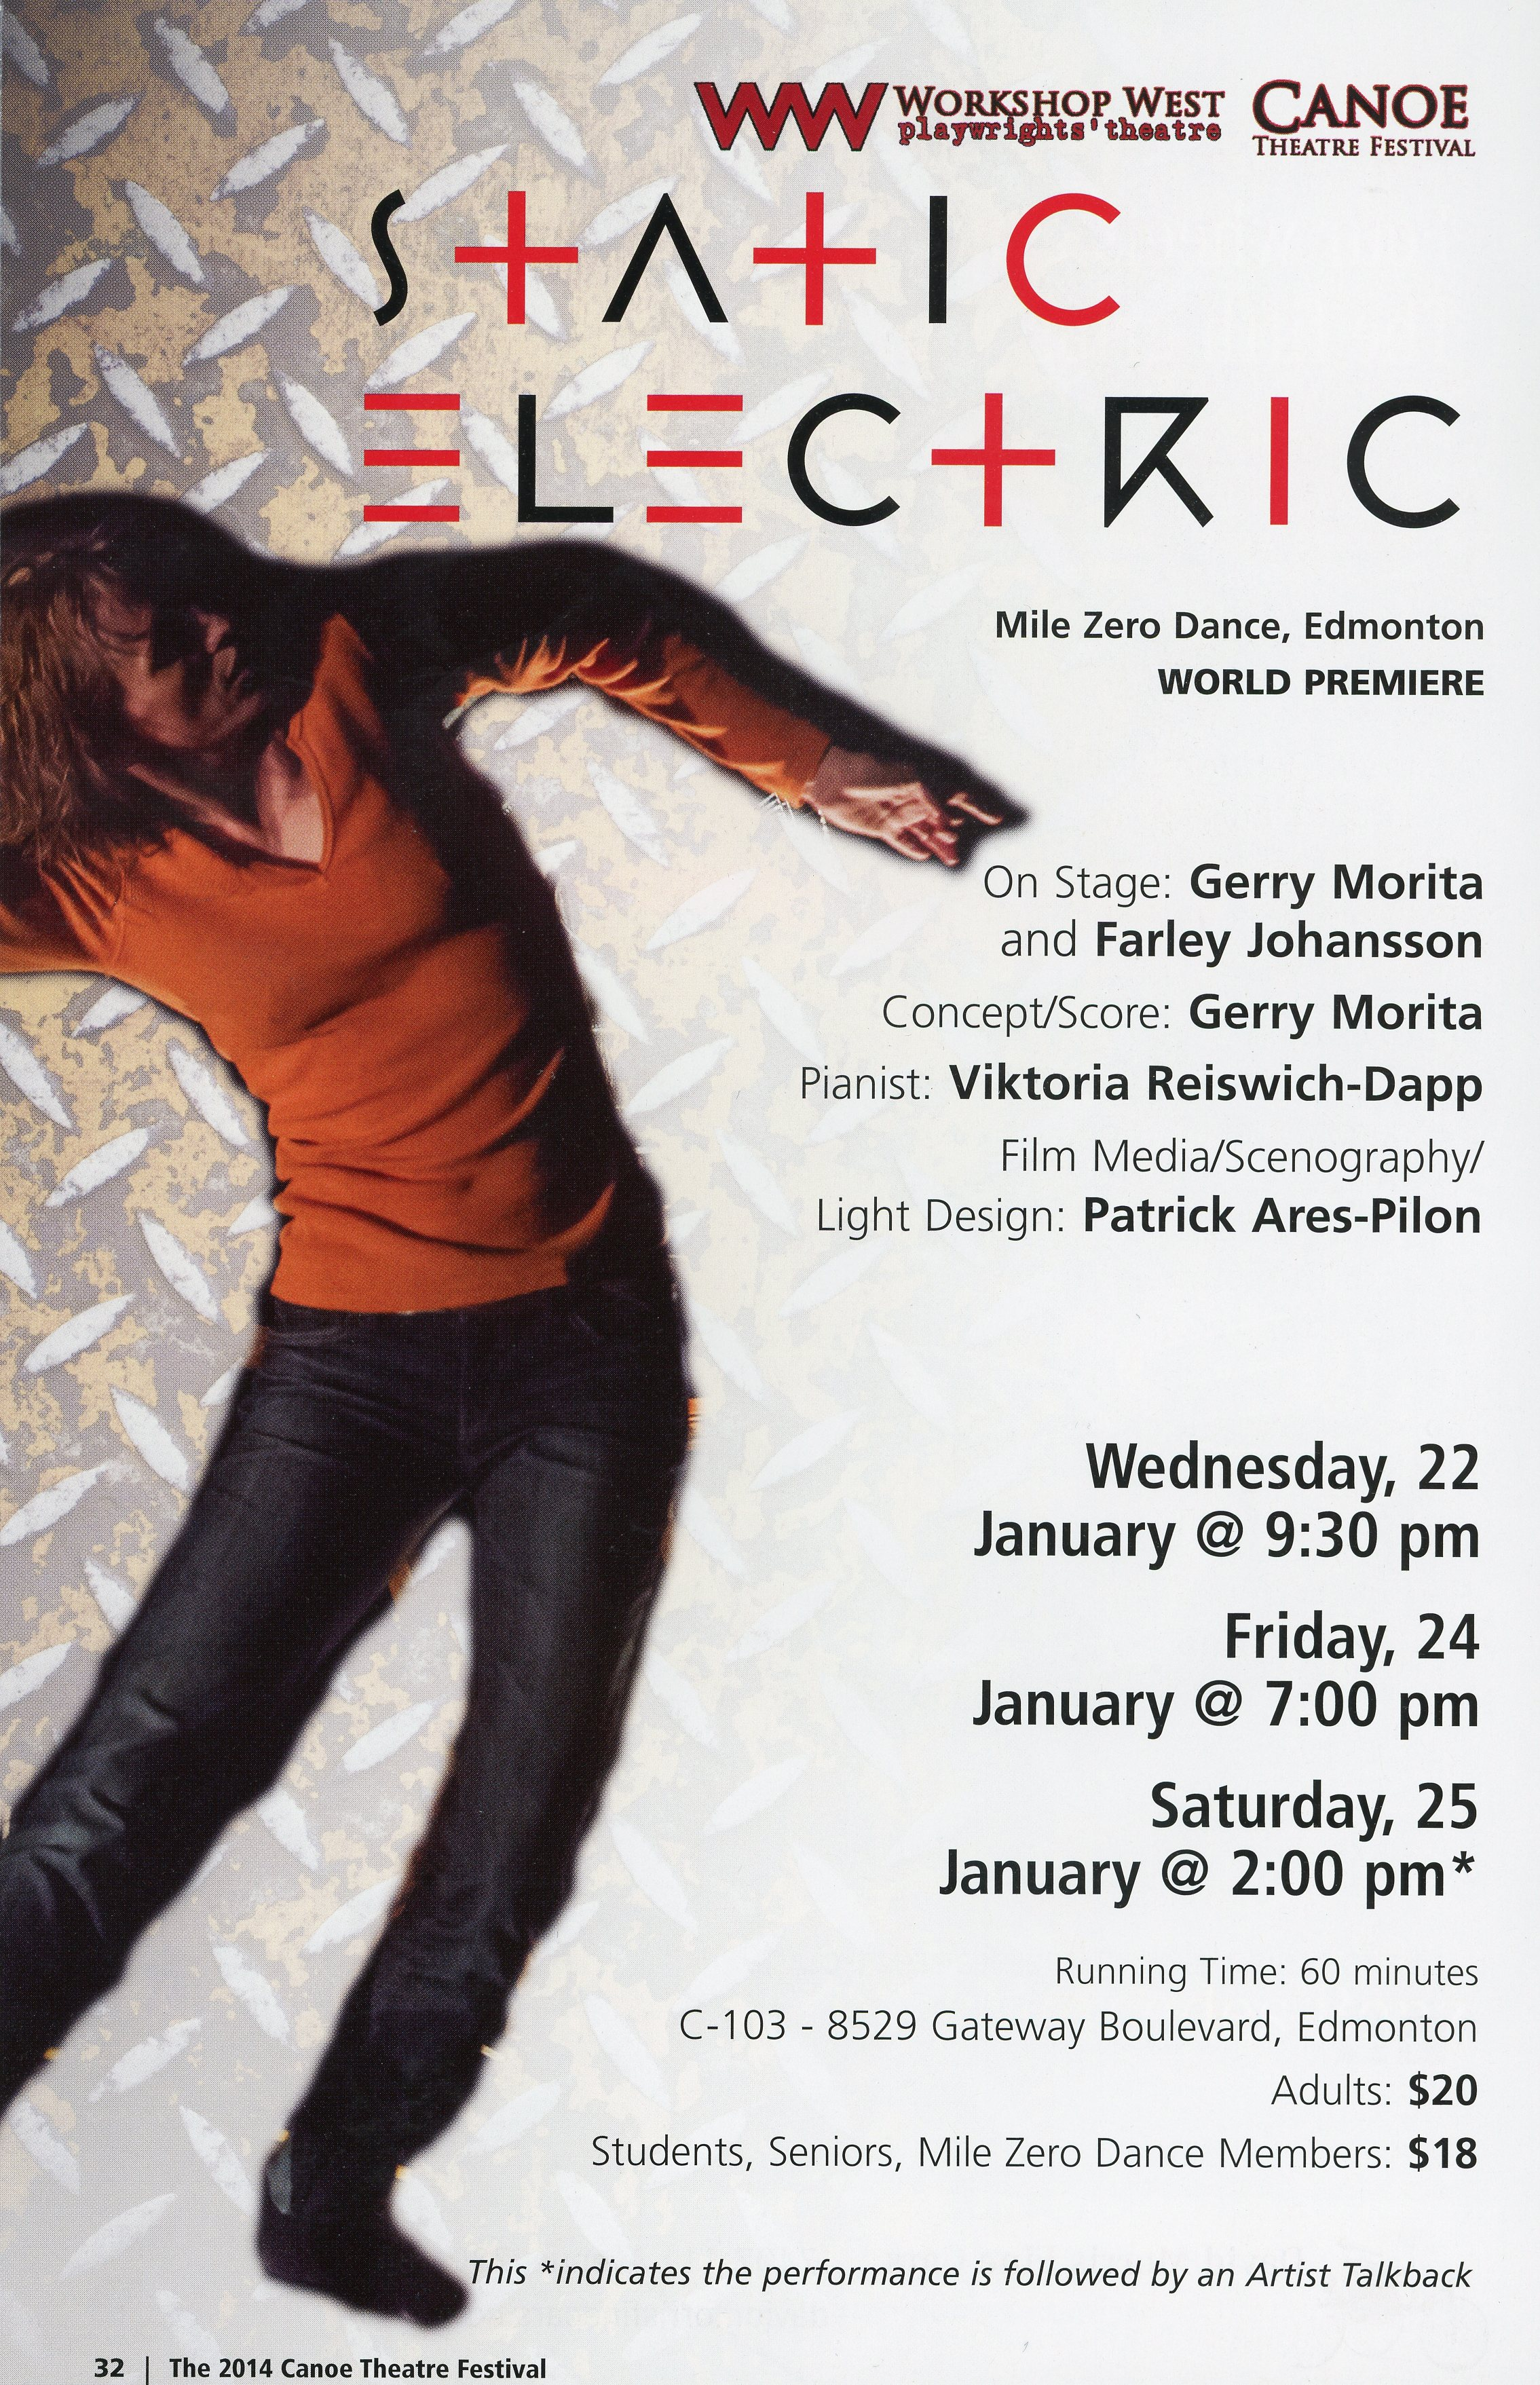 The Canoe Theatre Festival (January 2014)-Production Information- Static Electric_JPEG.jpg